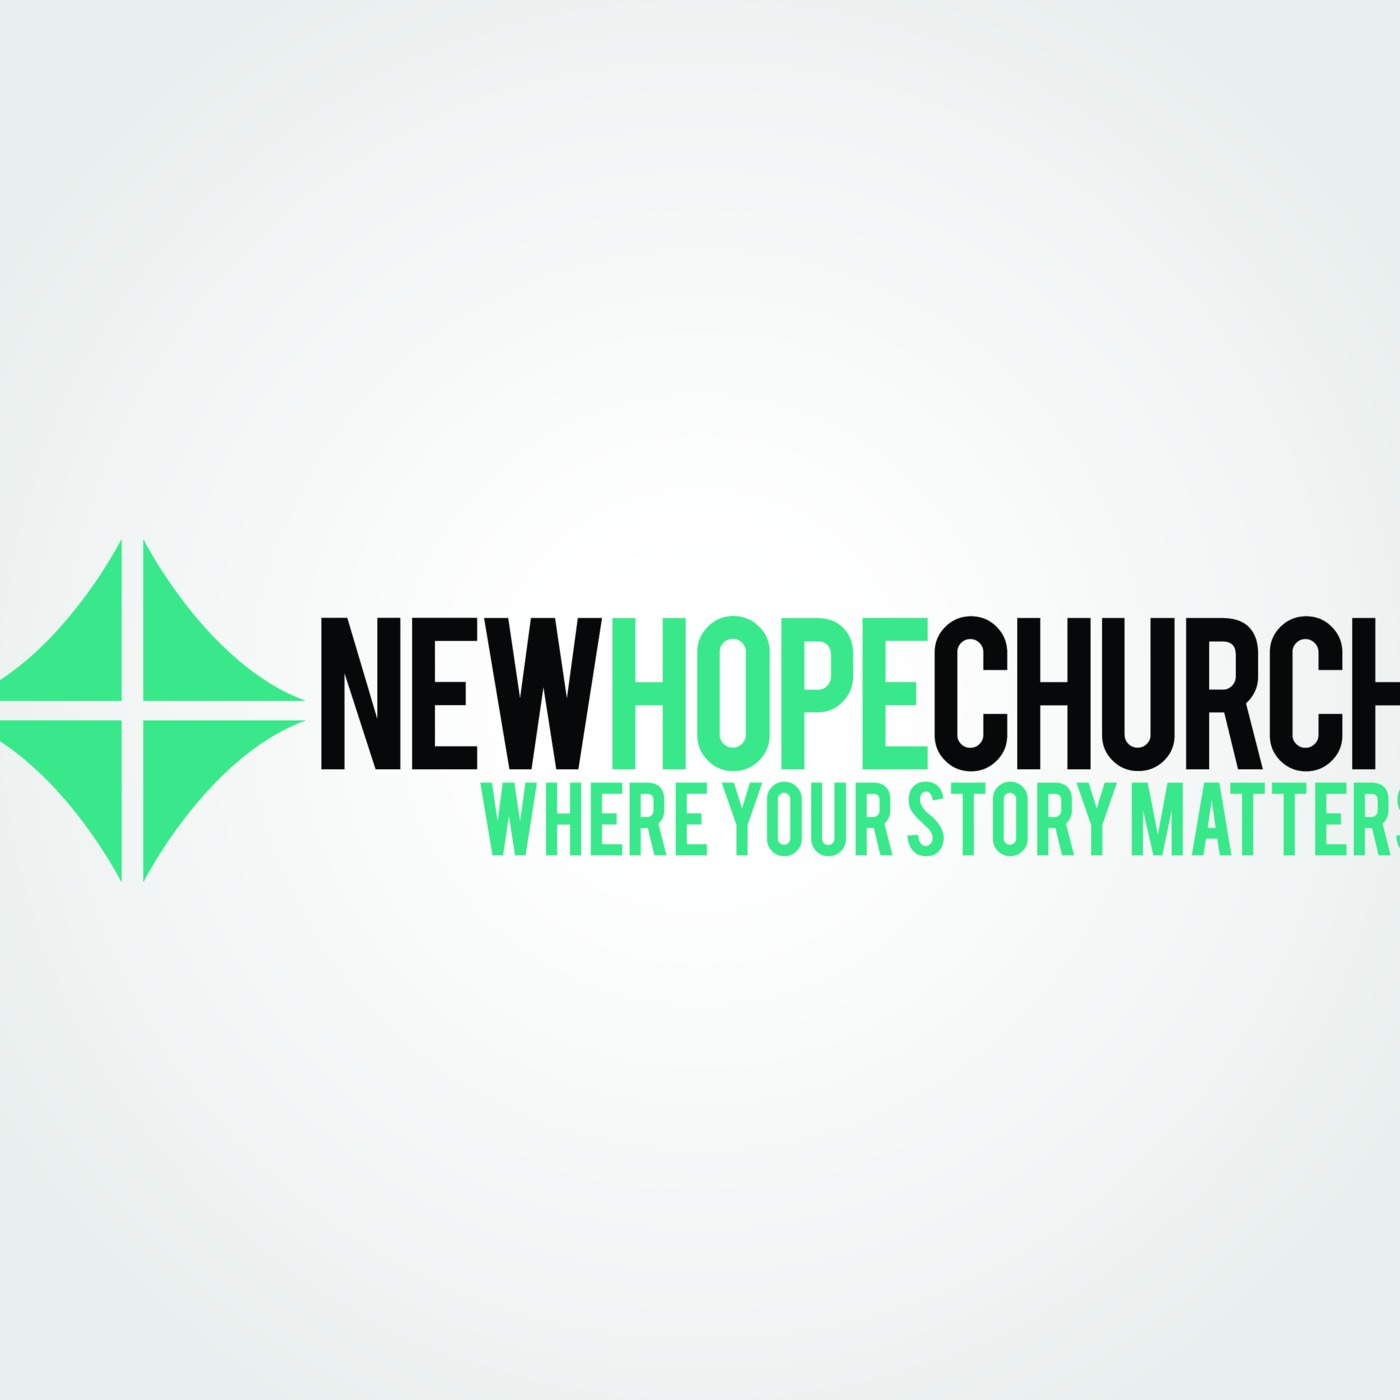 NewHopeFoursquareChurch's Podcast